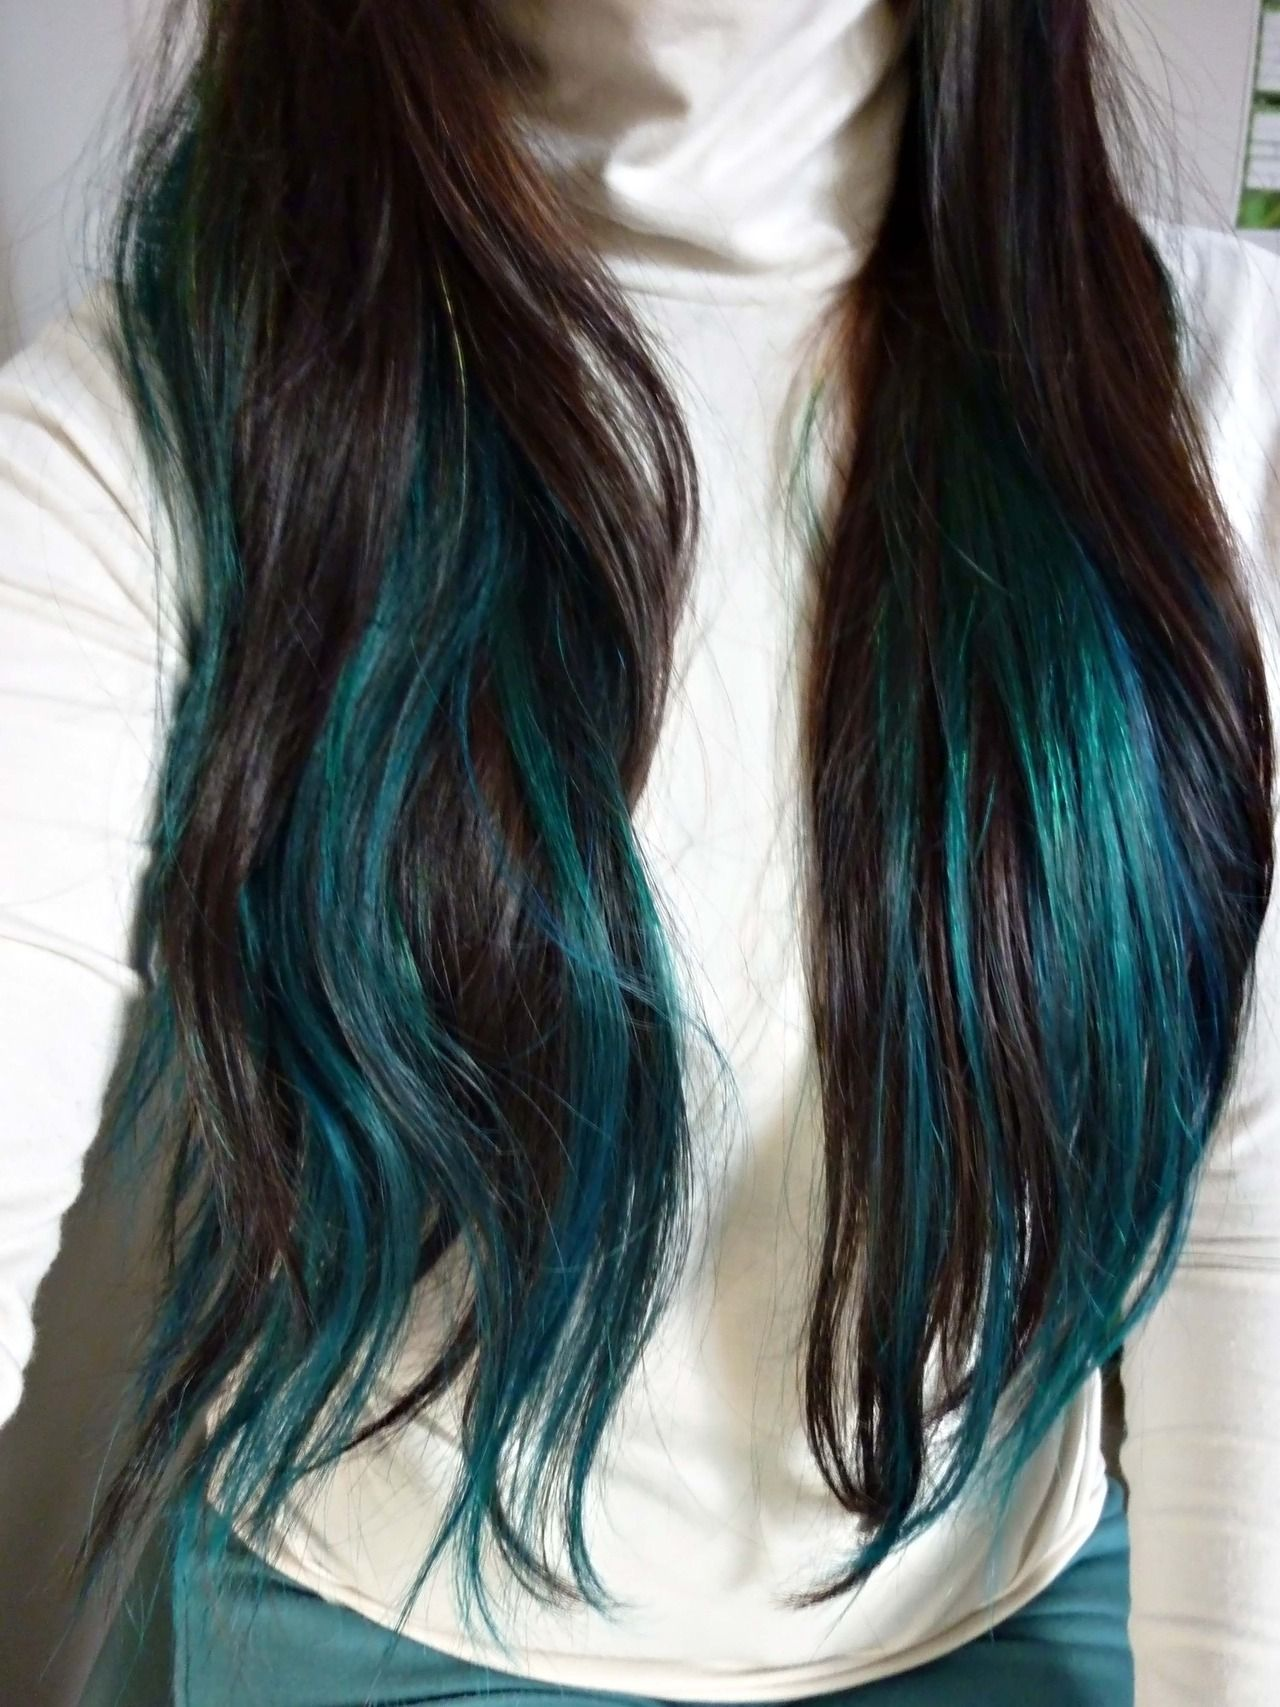 Pin By Elise Browne On Hair Color Style Teal Hair Hair Styles